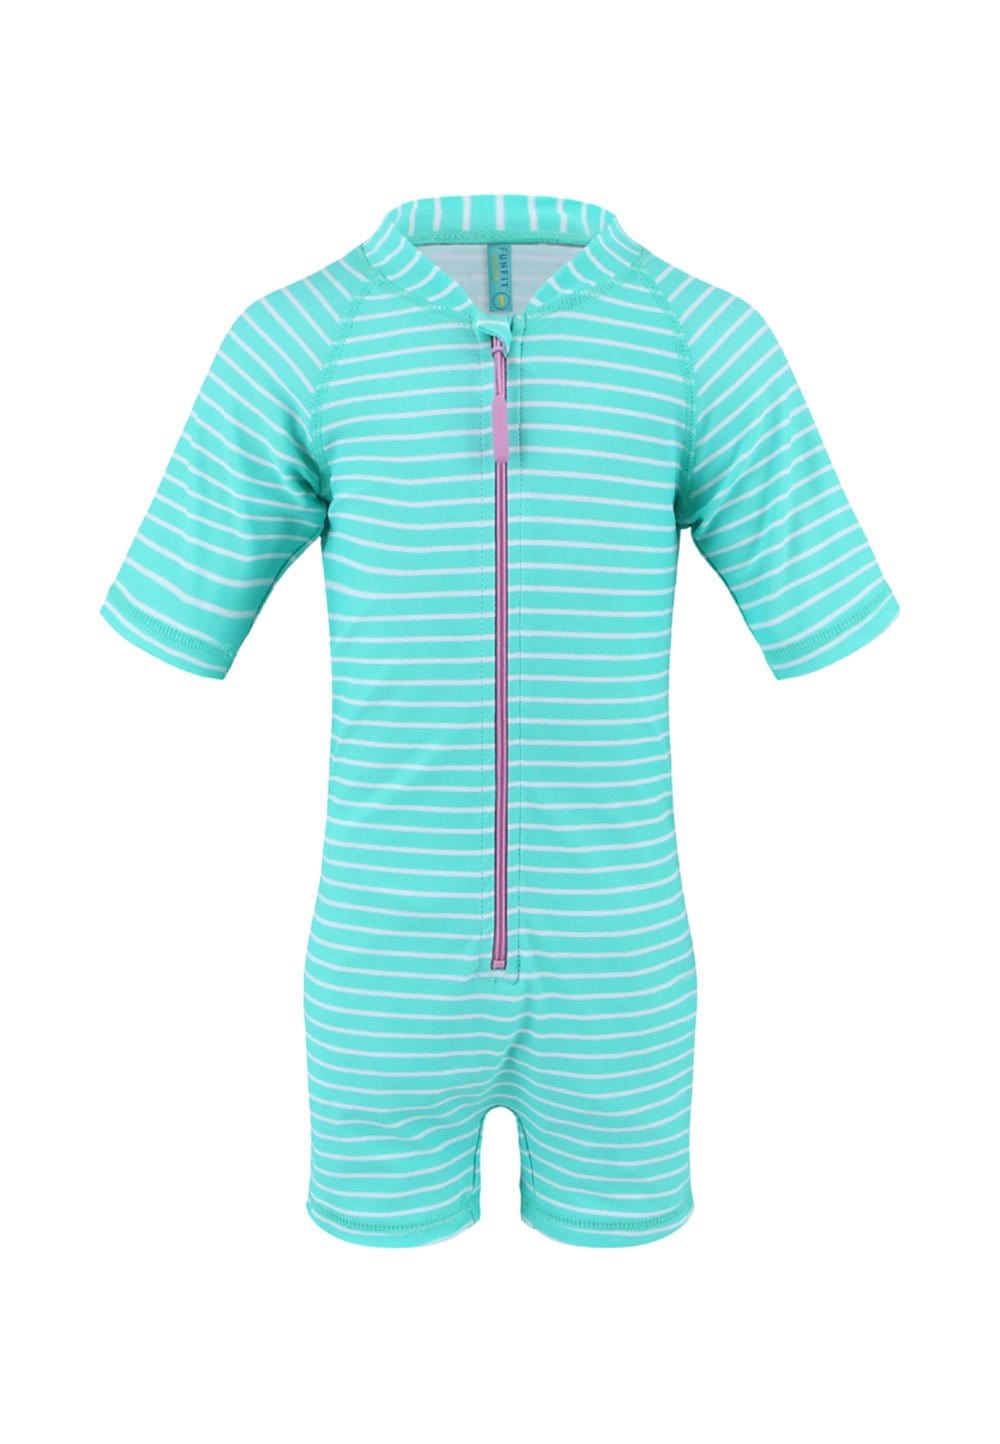 UPF50+ Junior Sunsuit Half Sleeve (Unisex) in Bubblegum Print